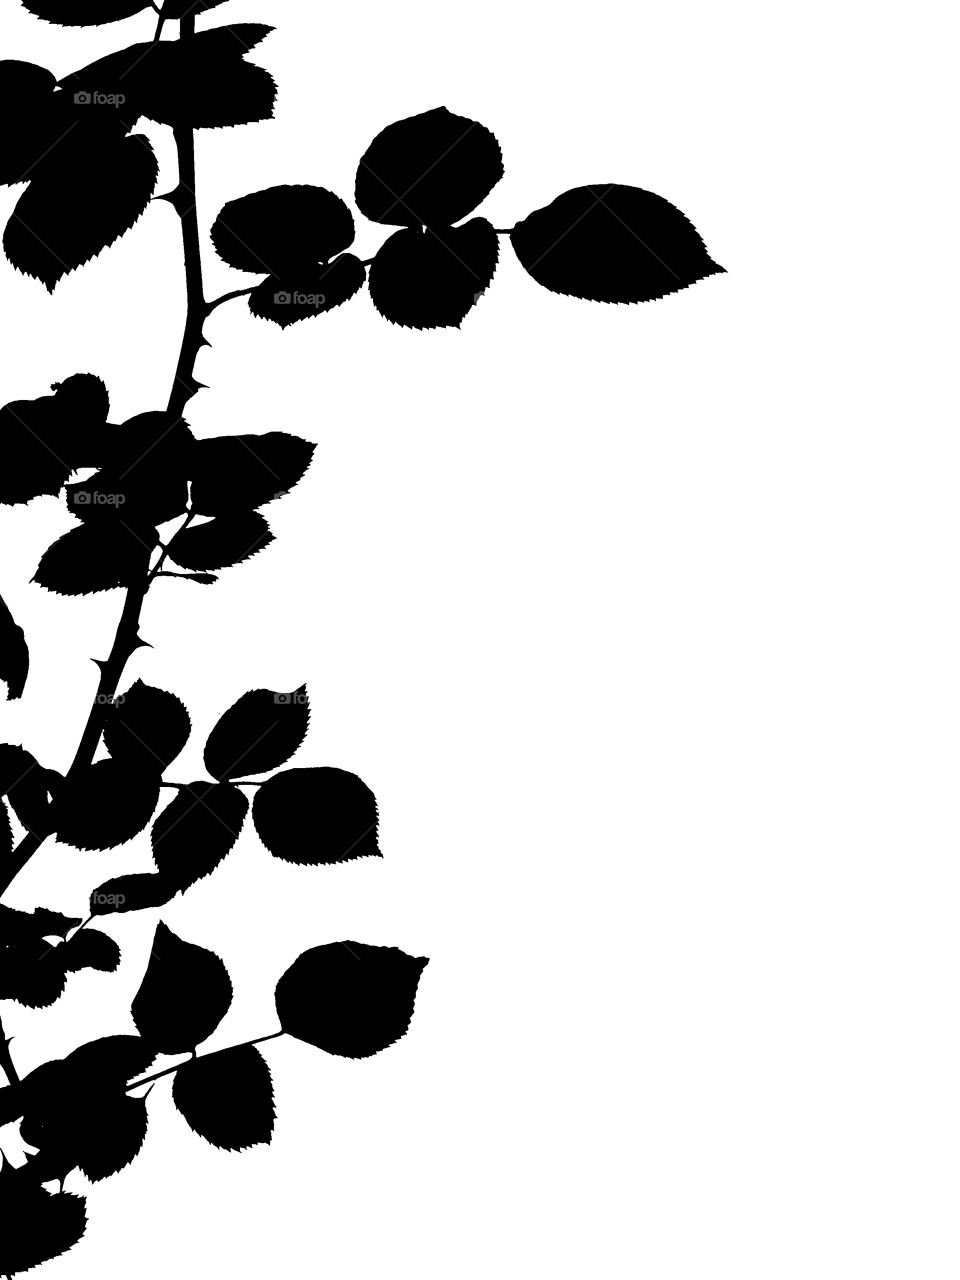 Silhouette rose twig isolated on white background with copy space.